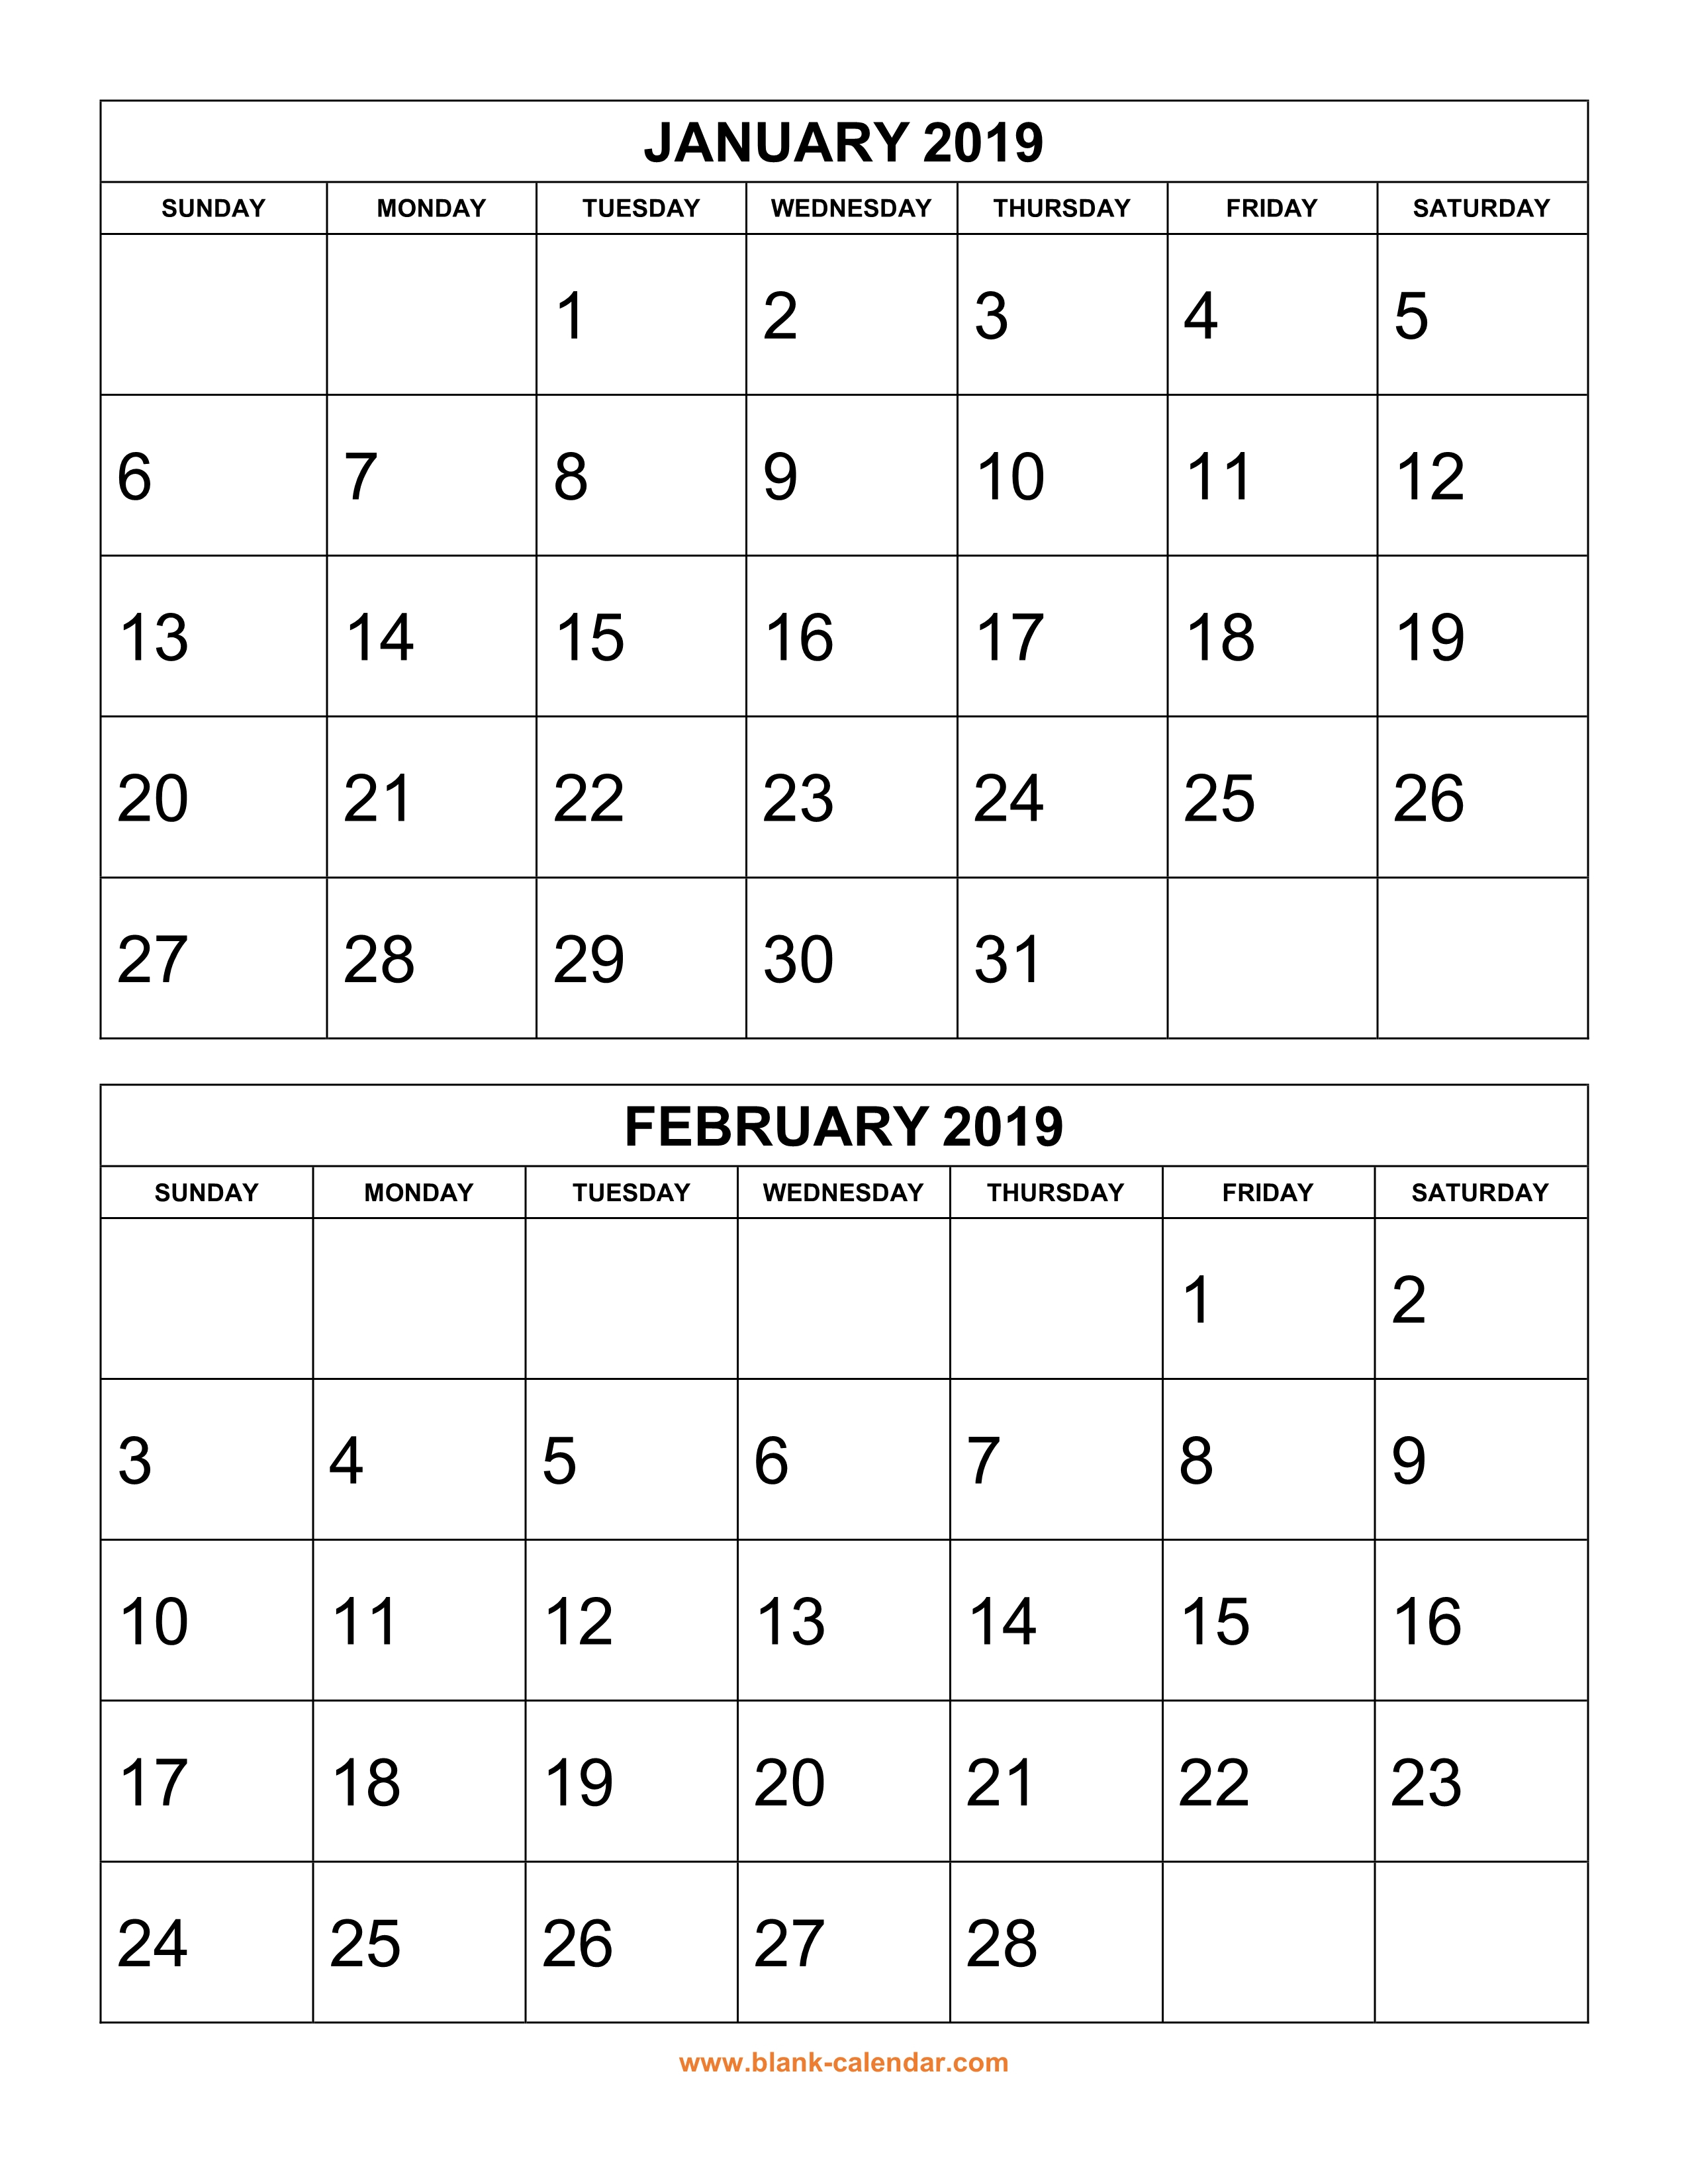 Free Download Printable Calendar 2019, 2 Months Per Page, 6 Pages throughout Calendar Template 3 Months Per Page